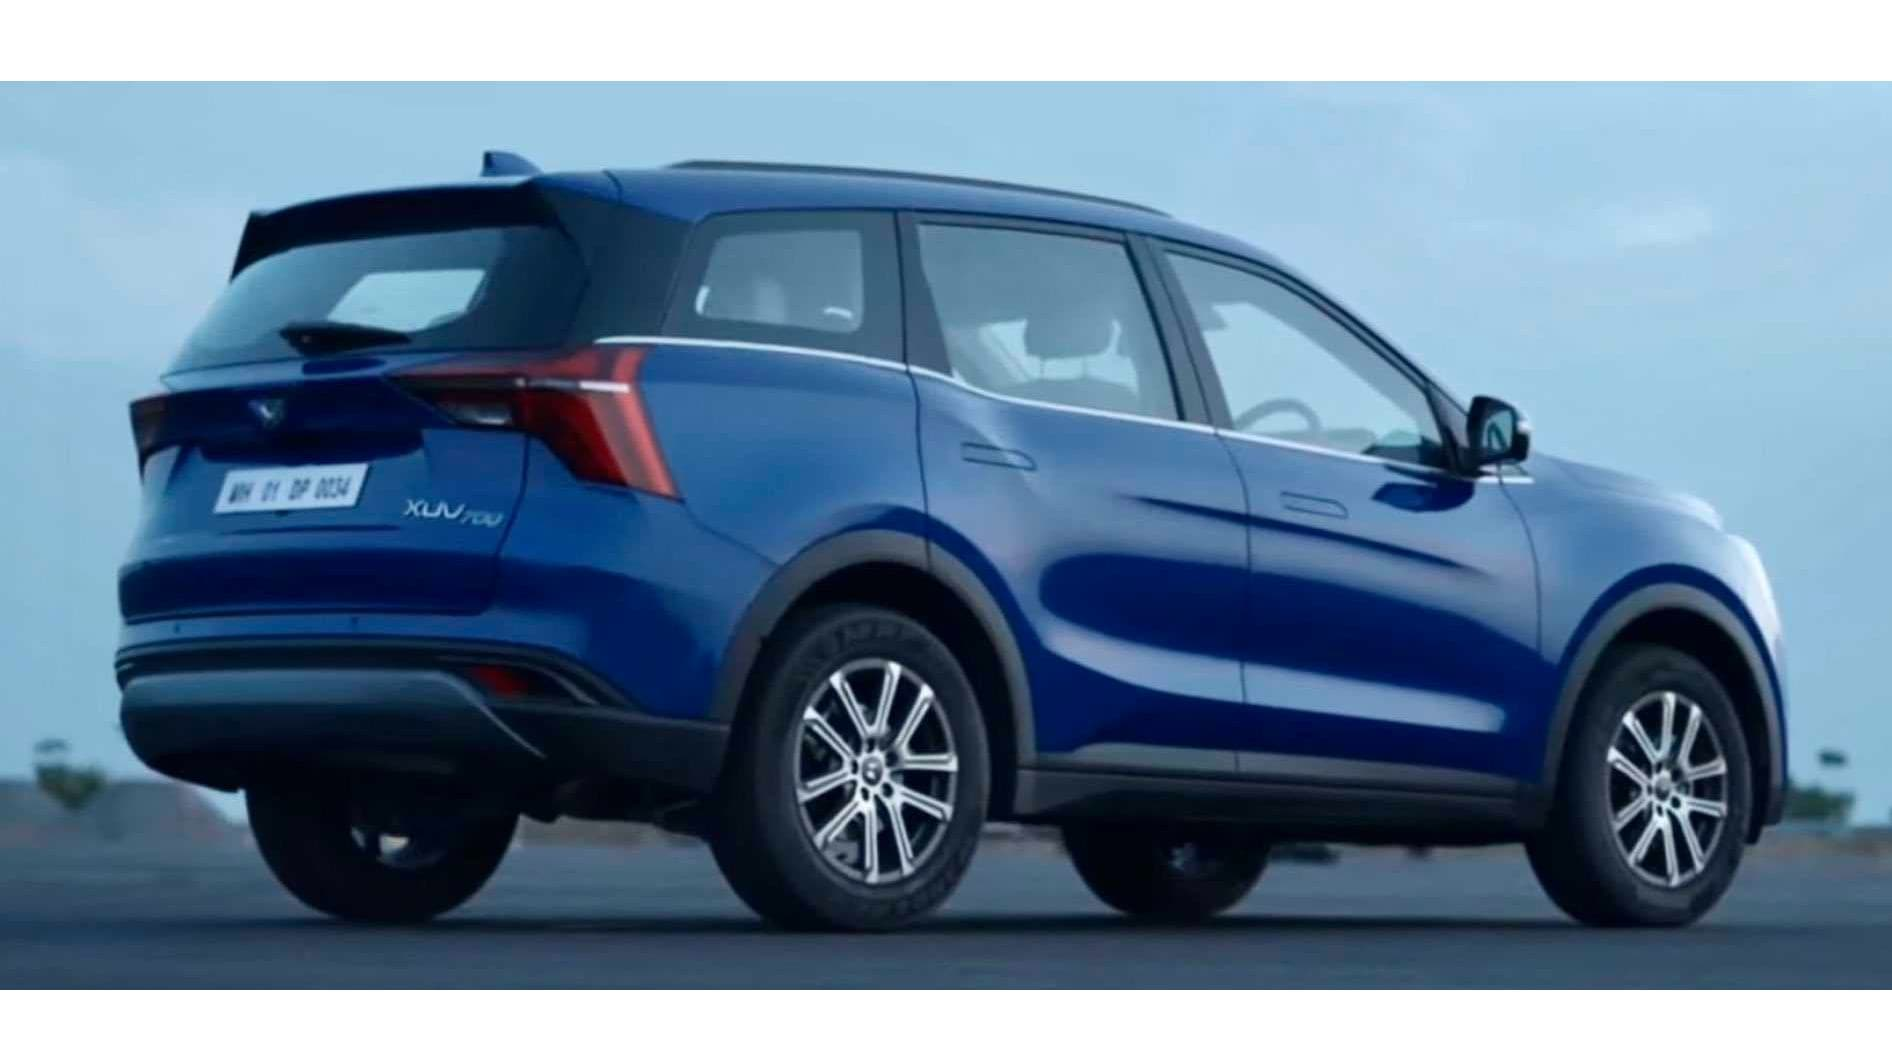 Mahindra XUV700 launched in India at a starting price of Rs 11.99 lakh,  undercuts even the outgoing XUV500- Technology News, Firstpost